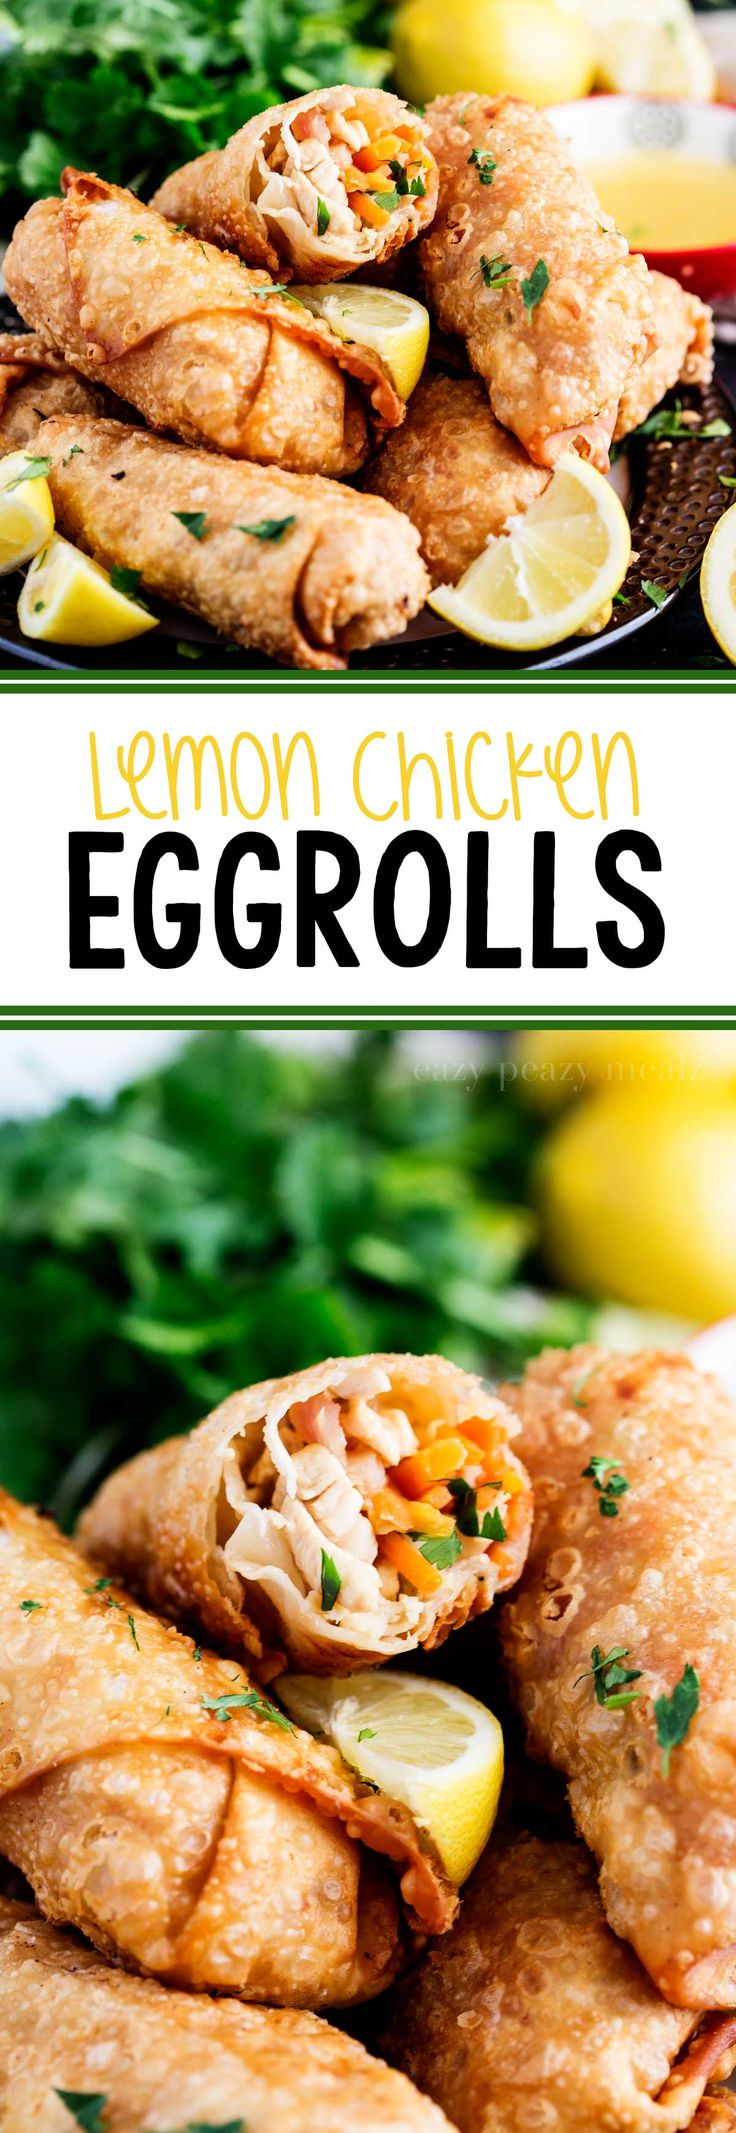 Lemon Chicken Egg Rolls are all the flavor of a classic lemon chicken with a fun, portable twist. Seriously yummy.